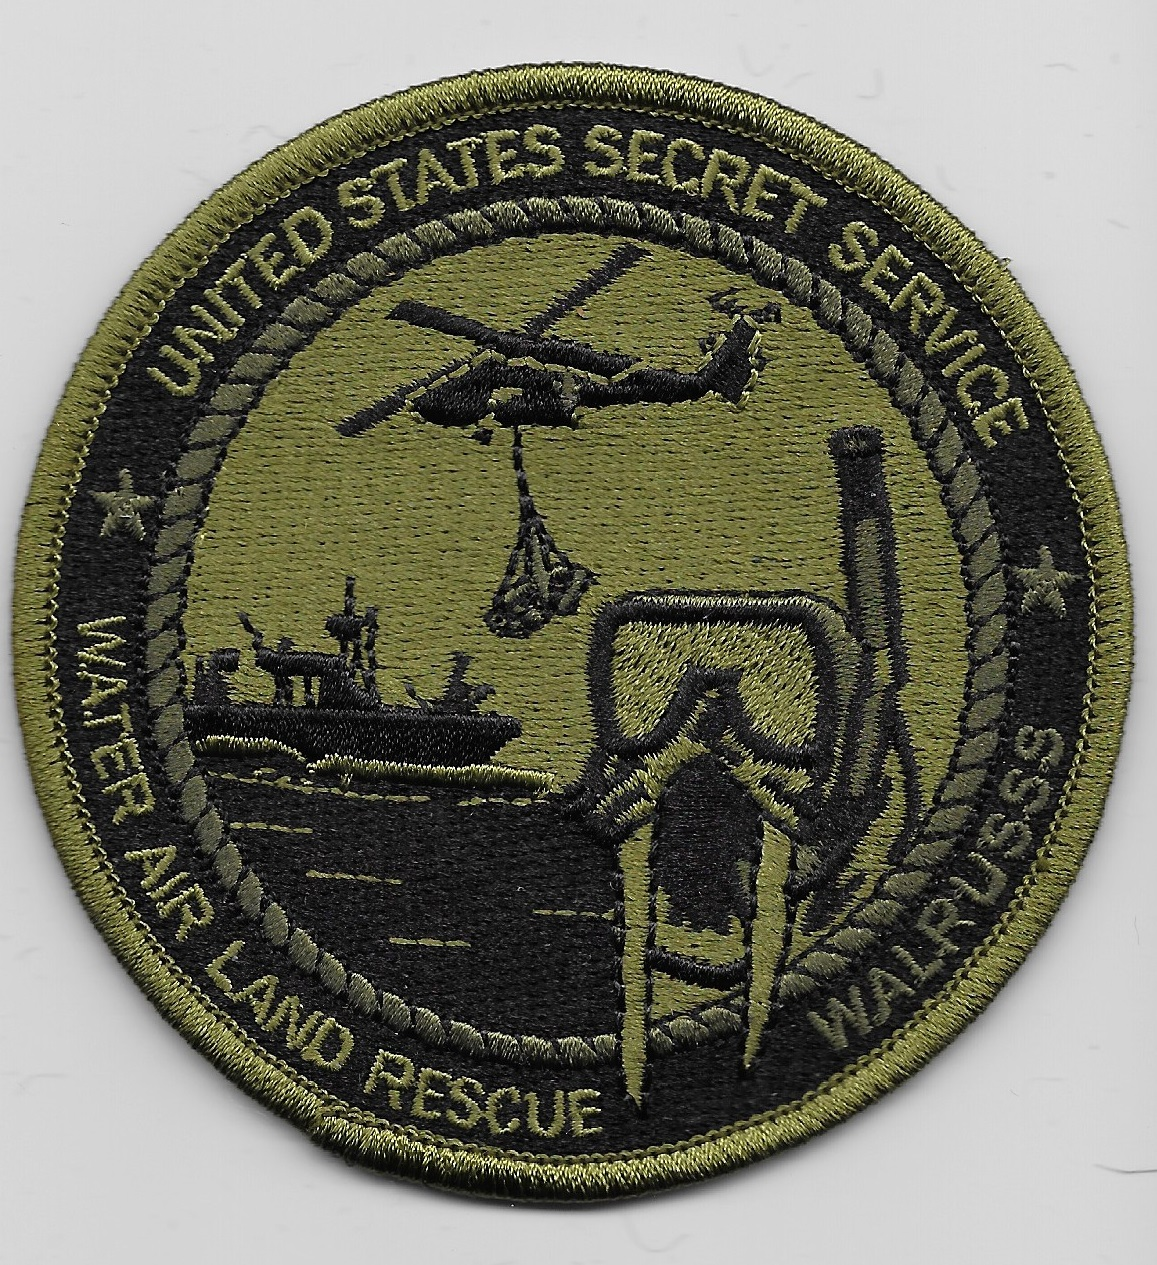 USSS Water Air Land Rescue Green